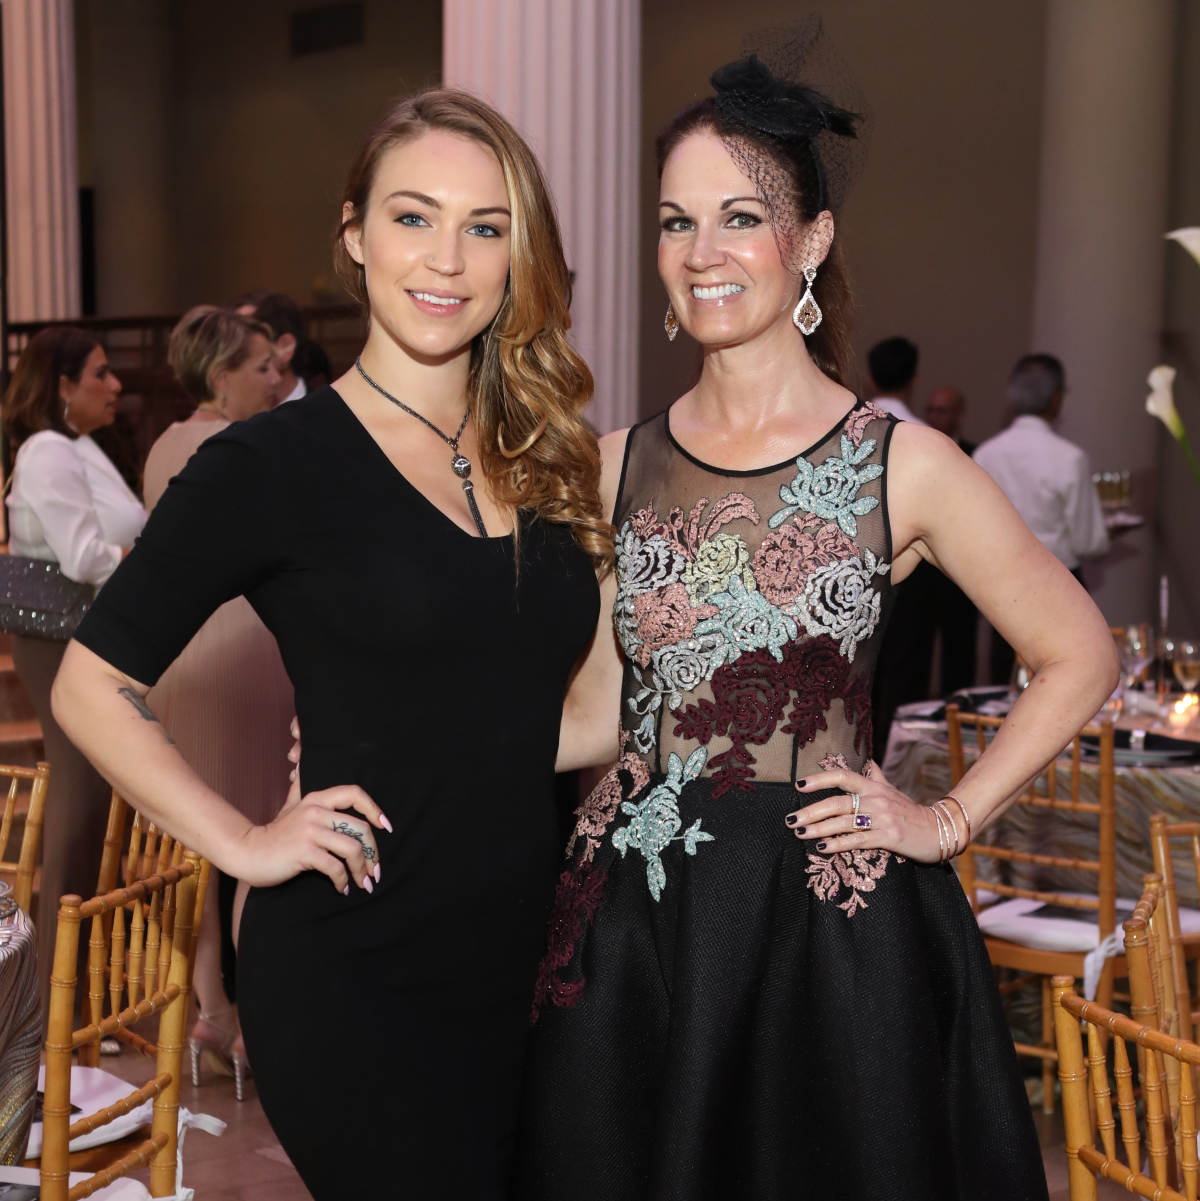 Raquel Fatiuk and Beth Muecke at Stages Gala 2017